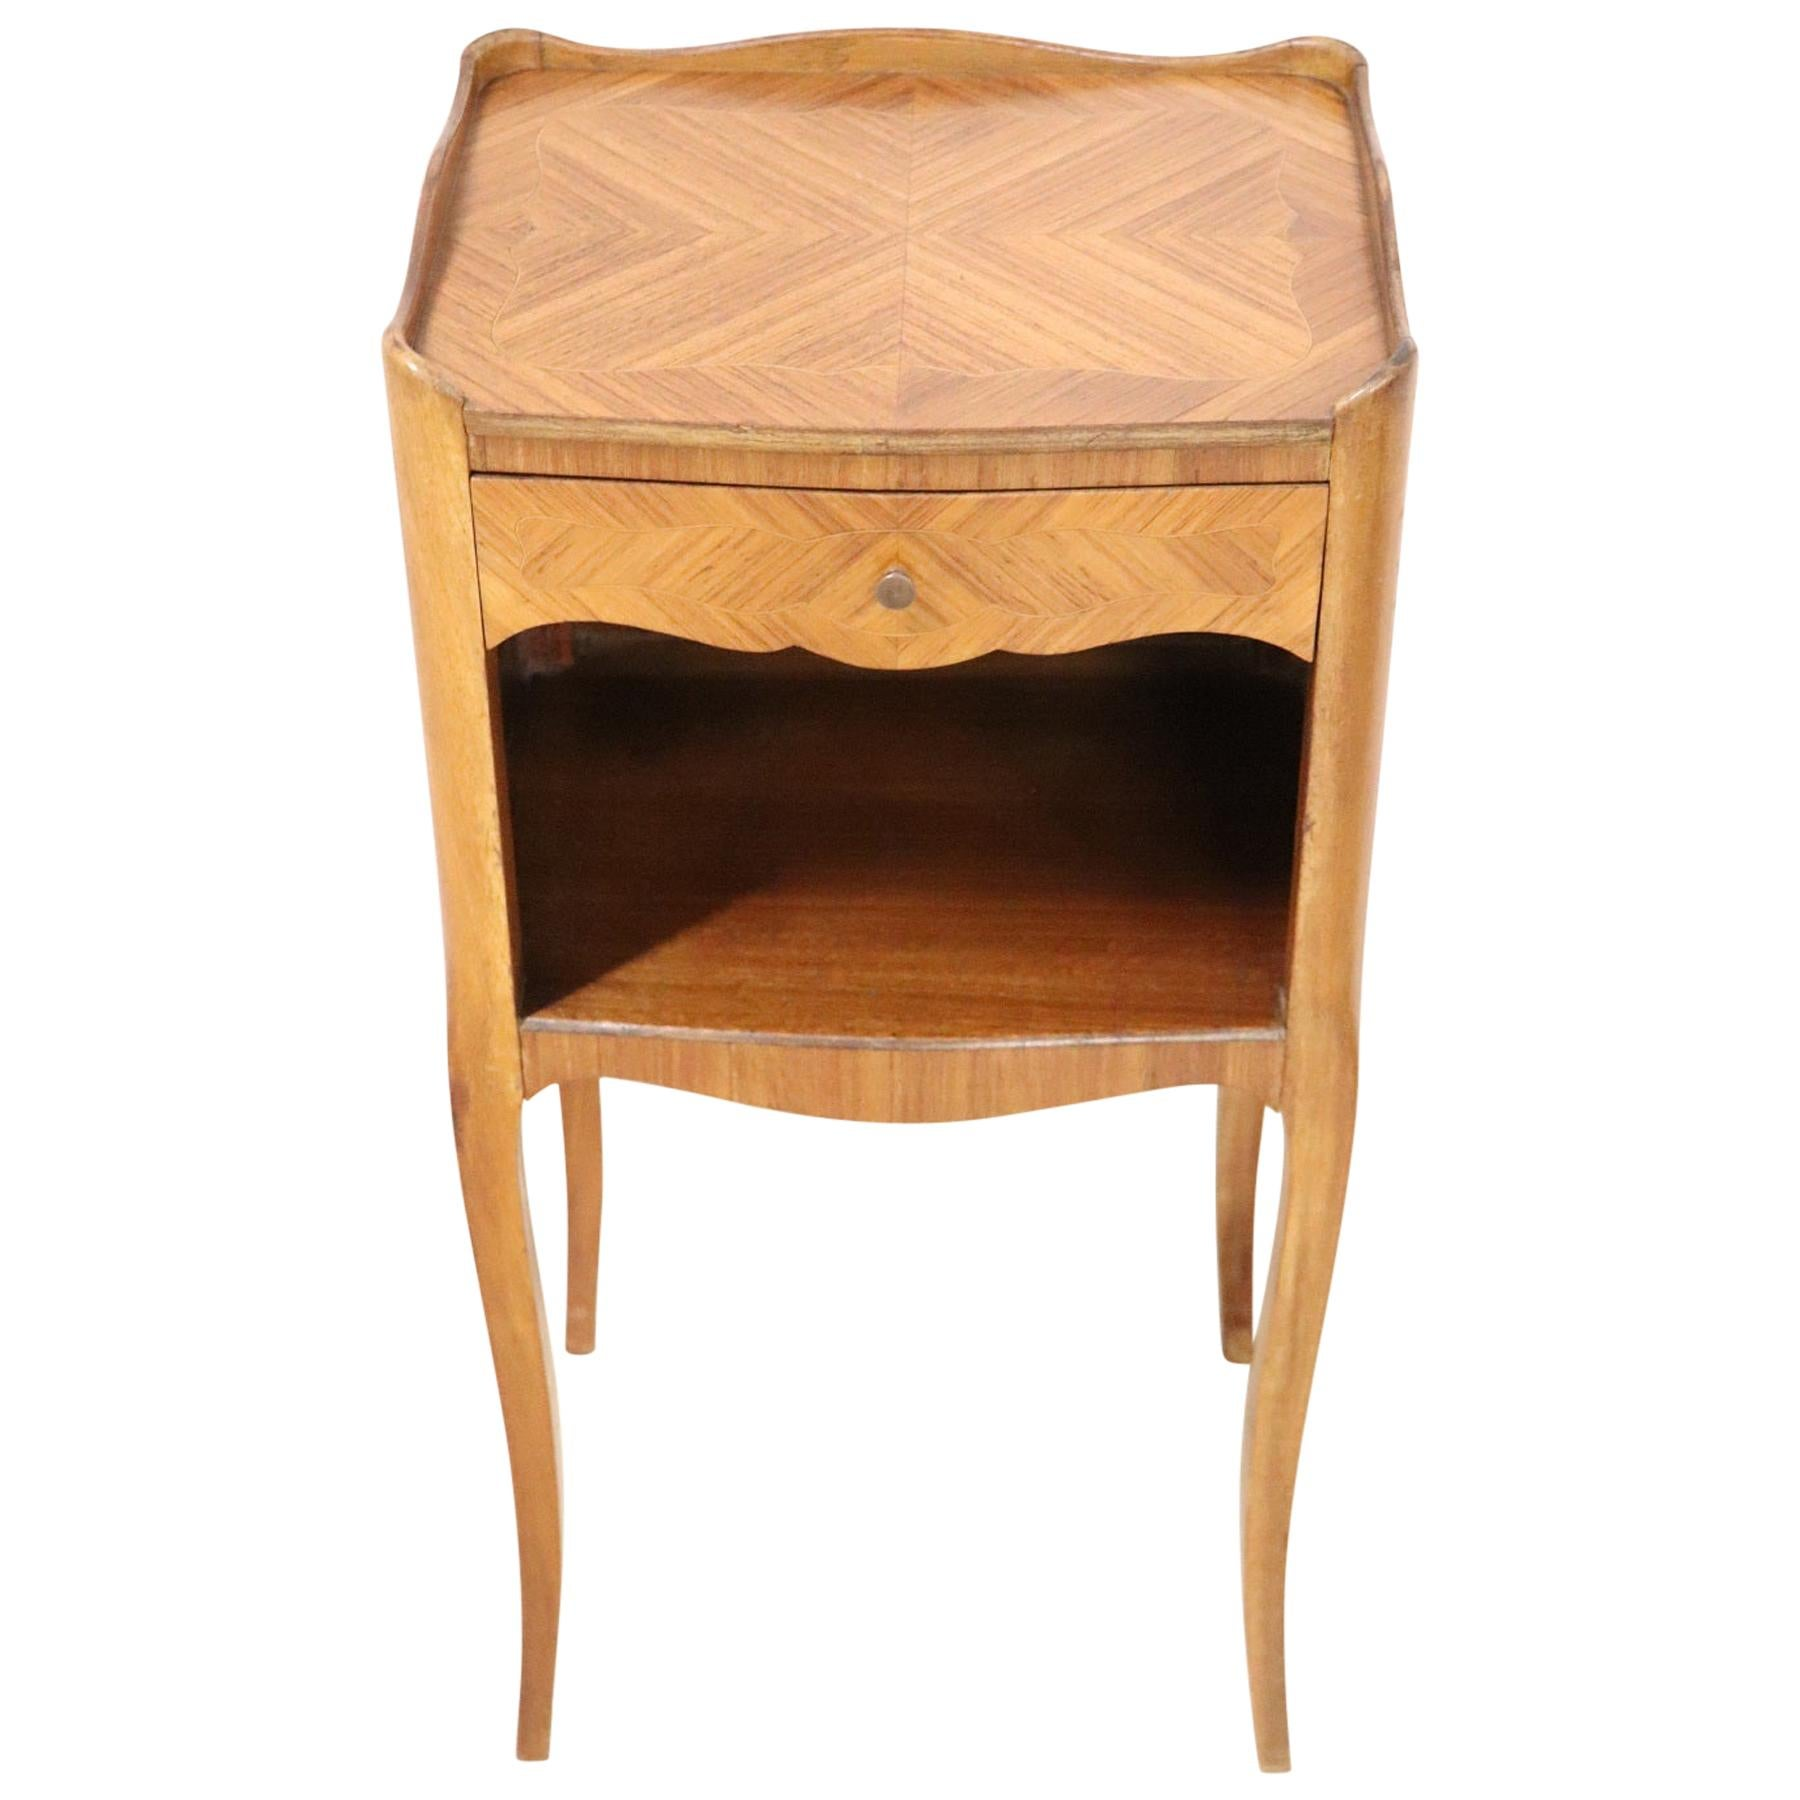 20th Century Italian Louis XV Style Inlay Wood Side Tables or Nightstand